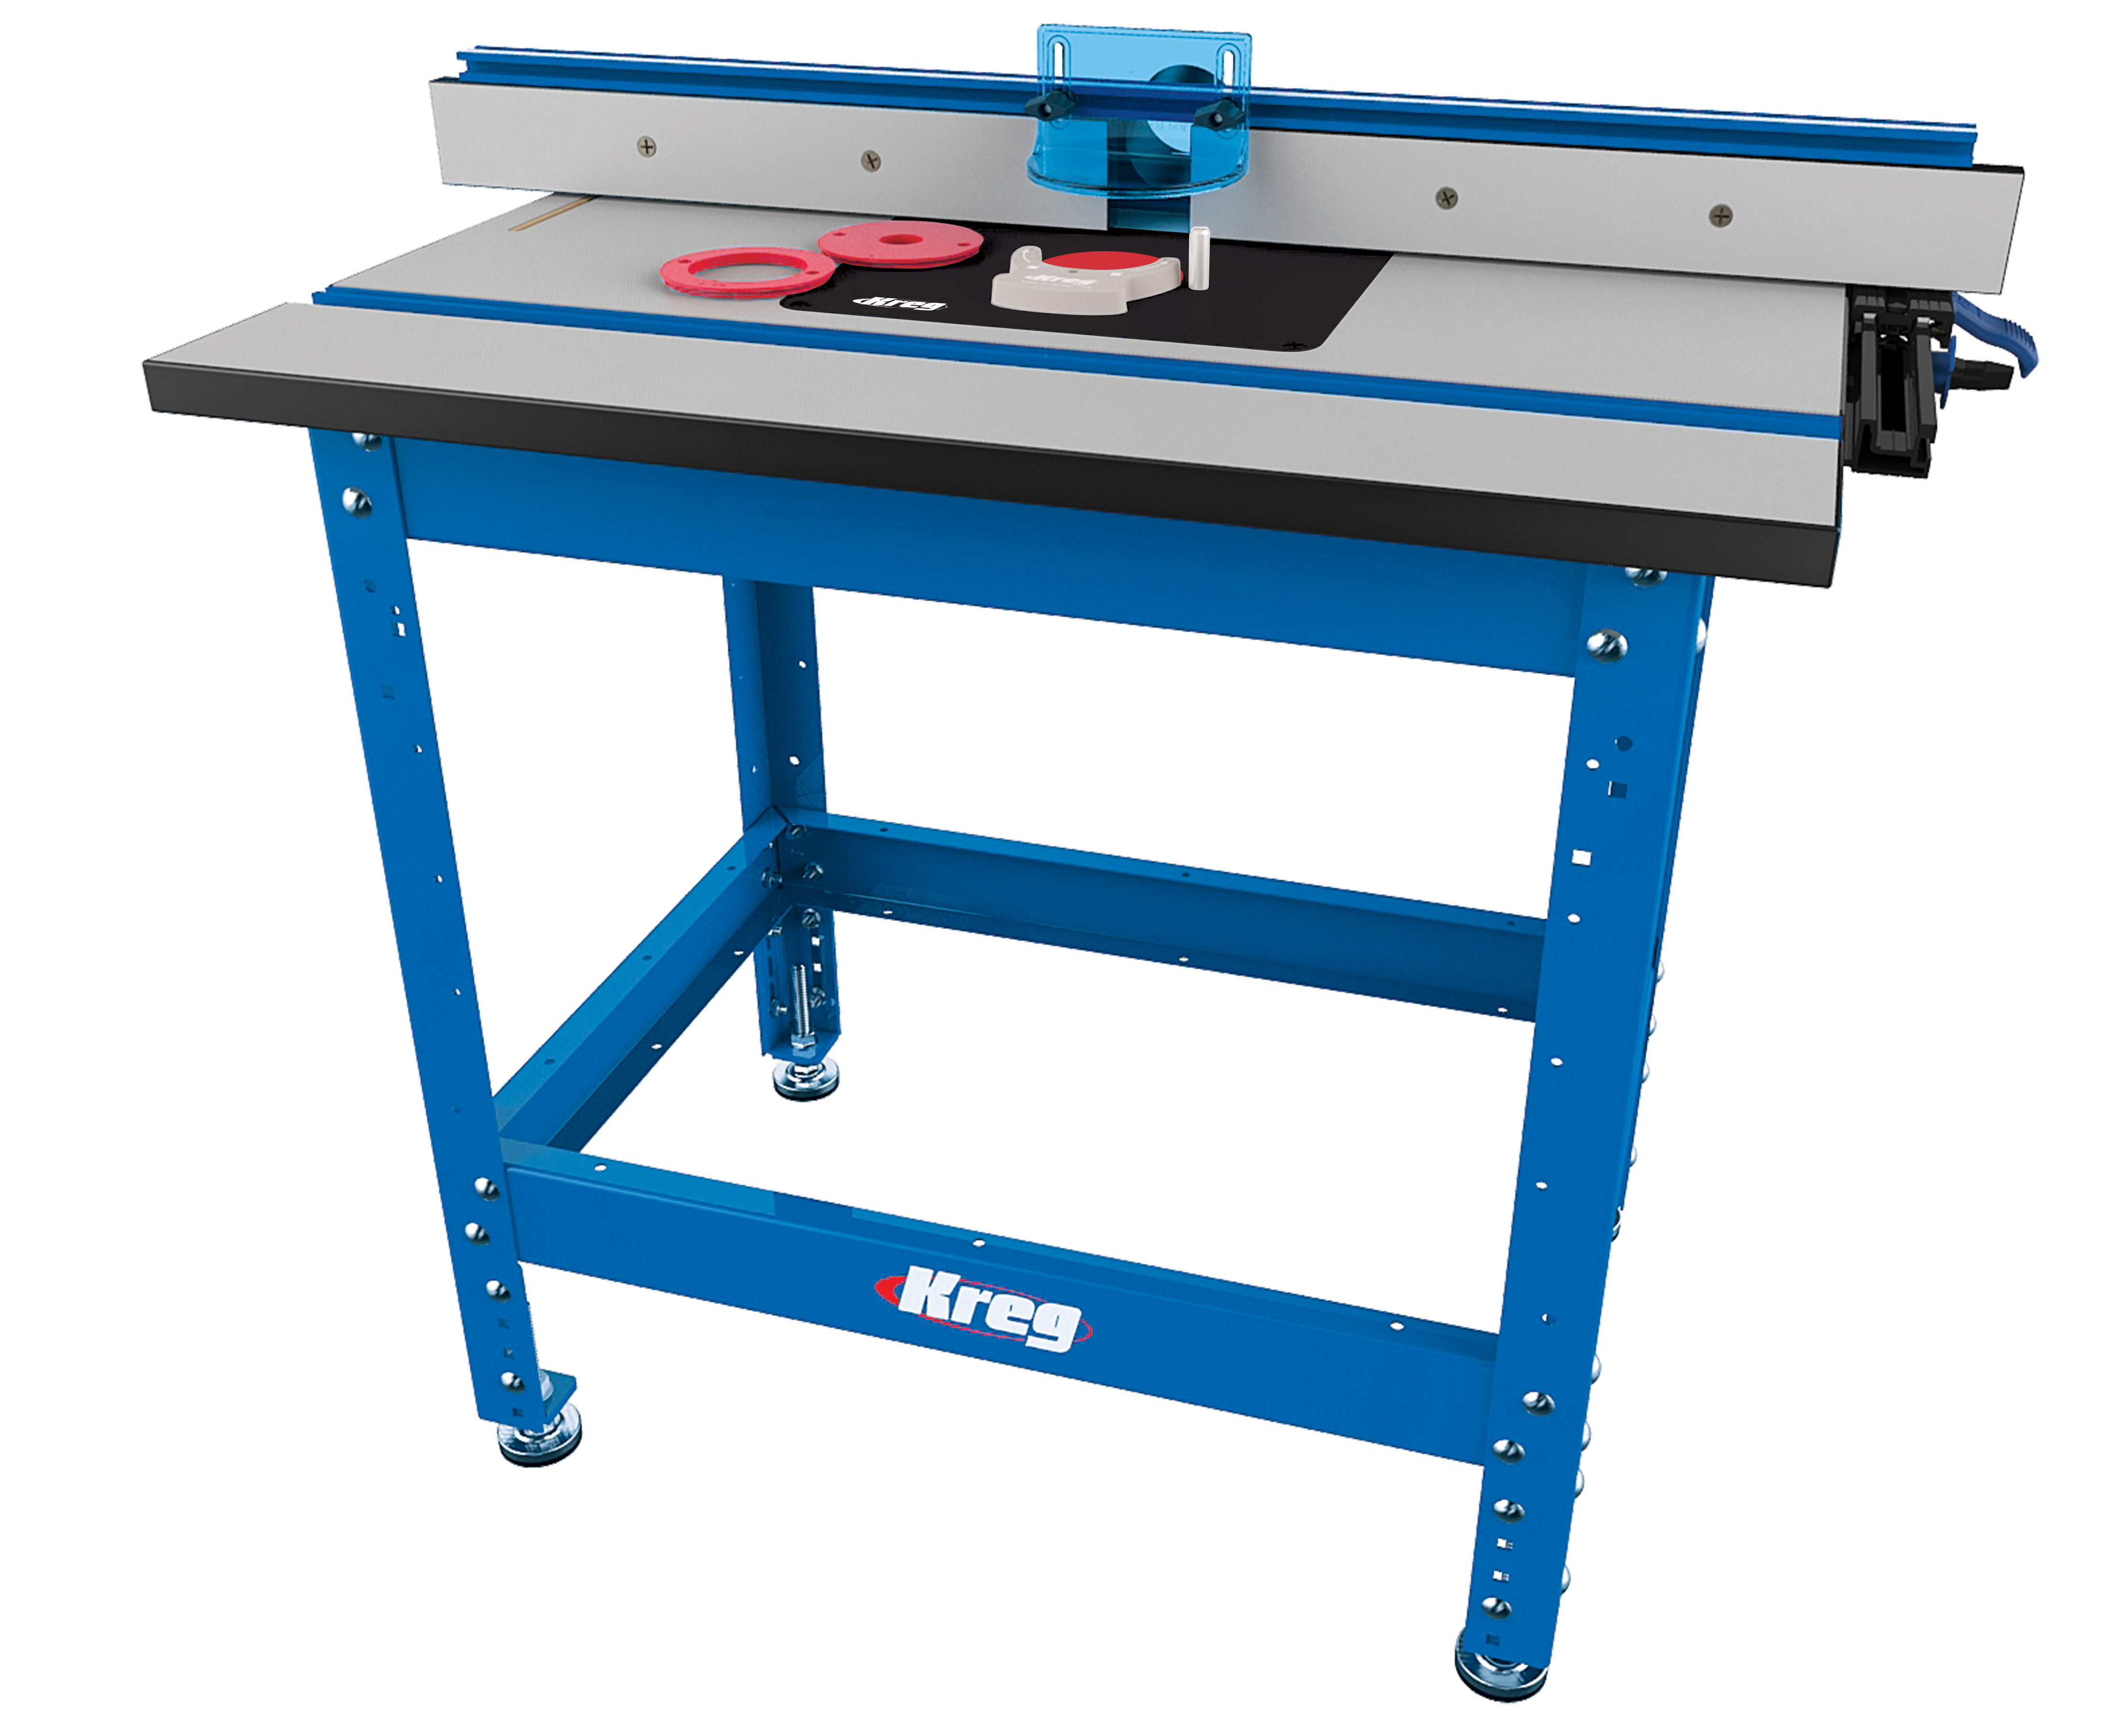 Kreg precision router table system tomaco the tool marketing company kreg precision router table system greentooth Gallery